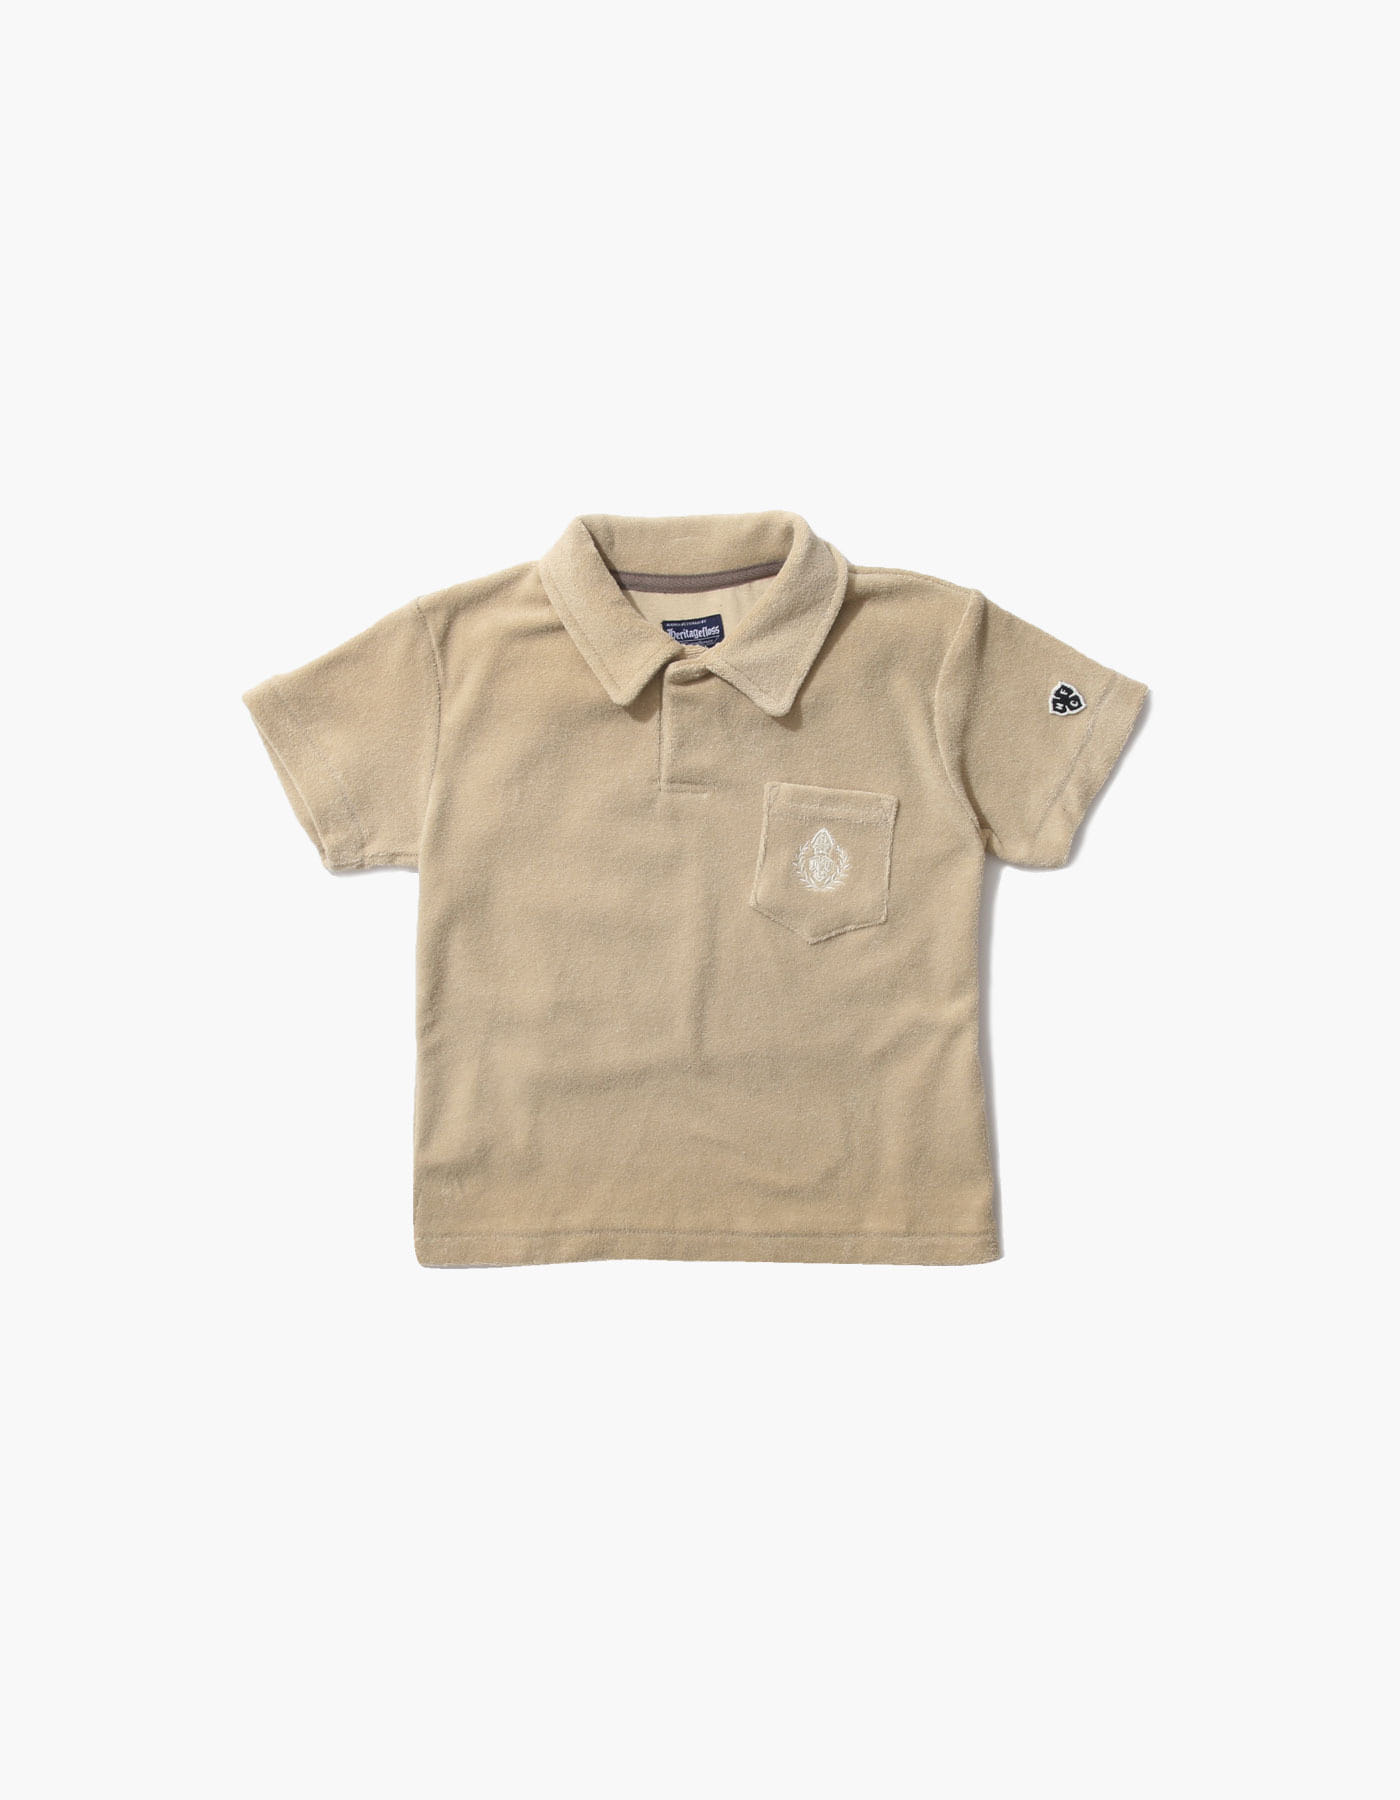 HFC CREST KIDS TOWEL POLO SHIRTS / BEIGE